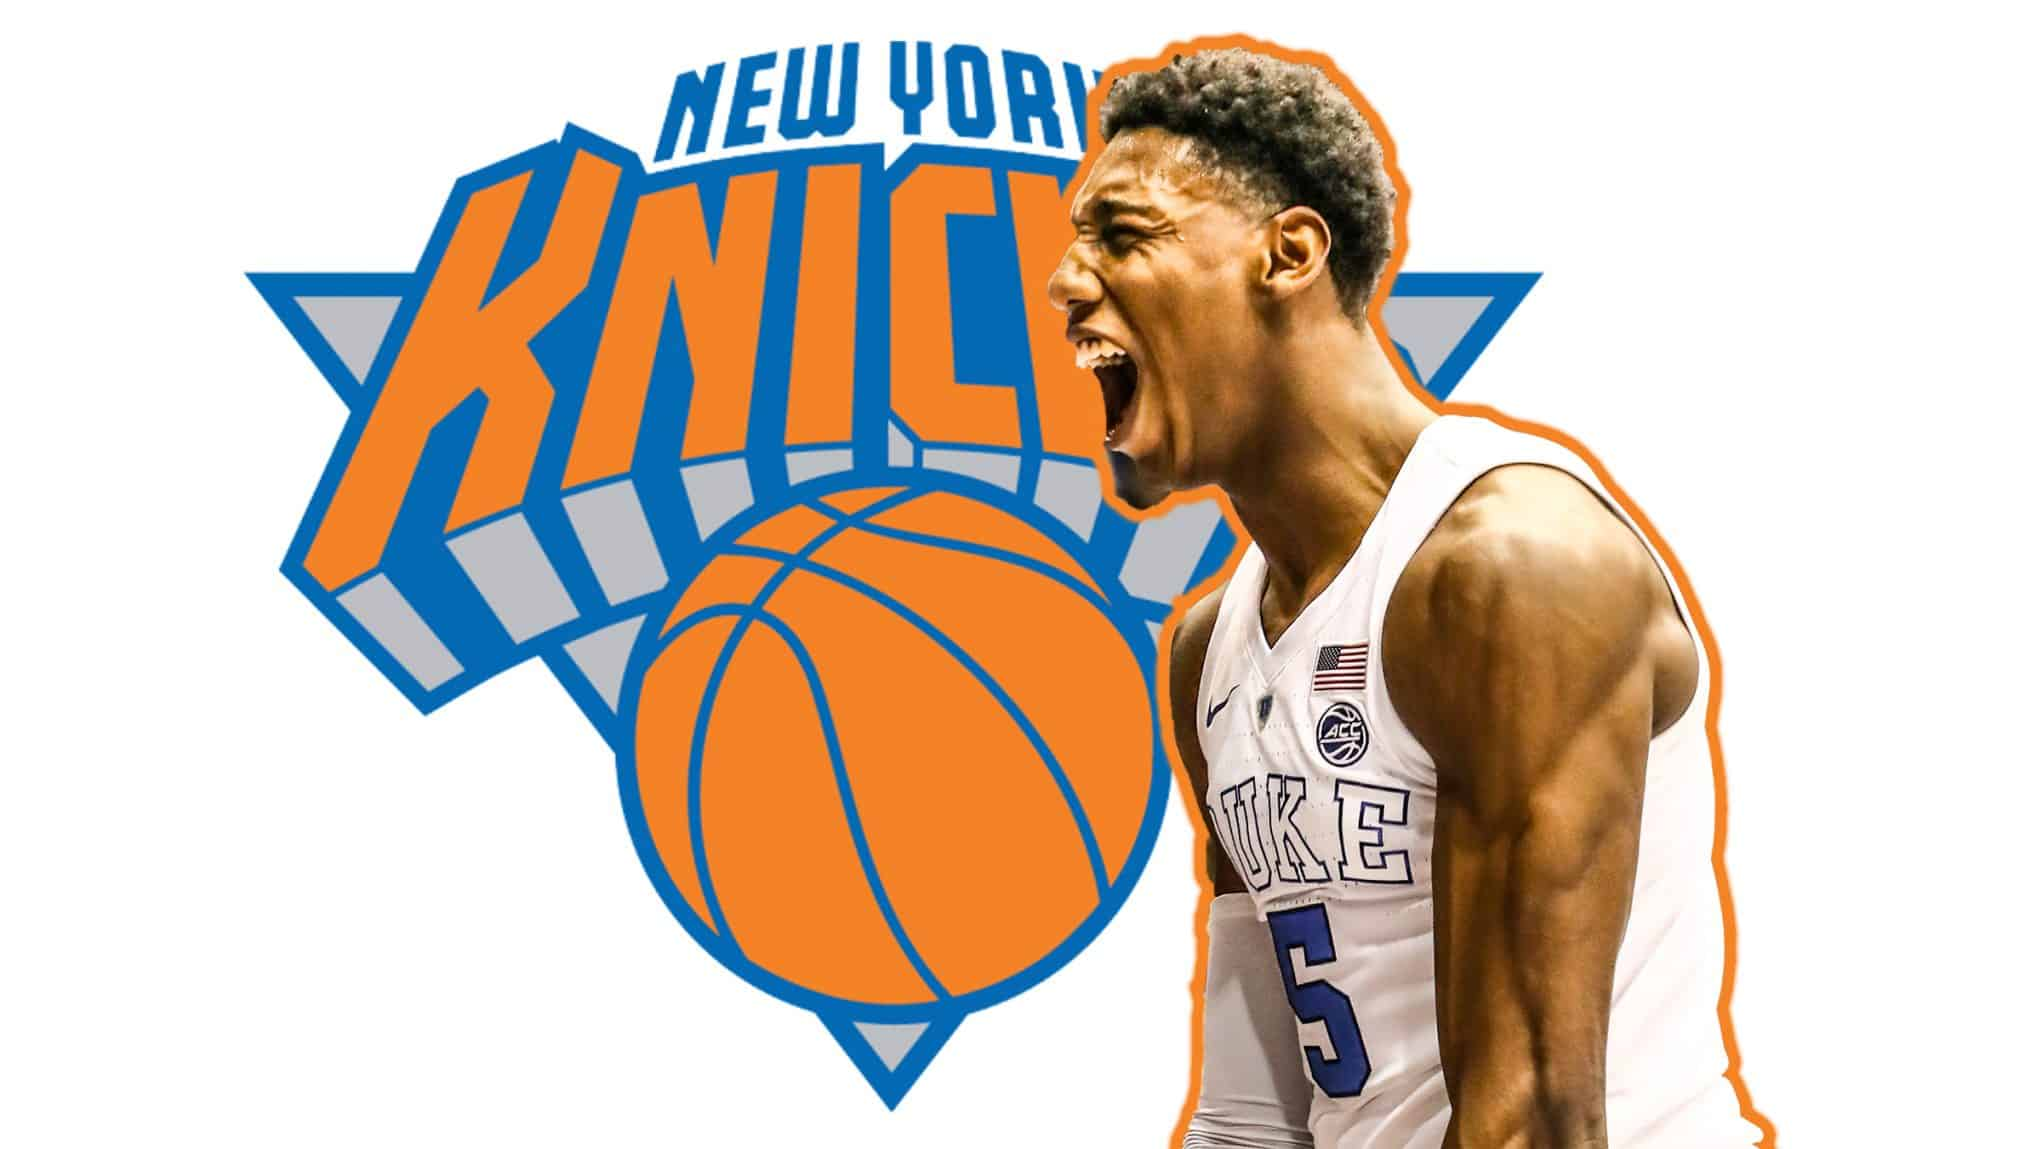 R.J. BARRETT IN A KNICKS JERSEY